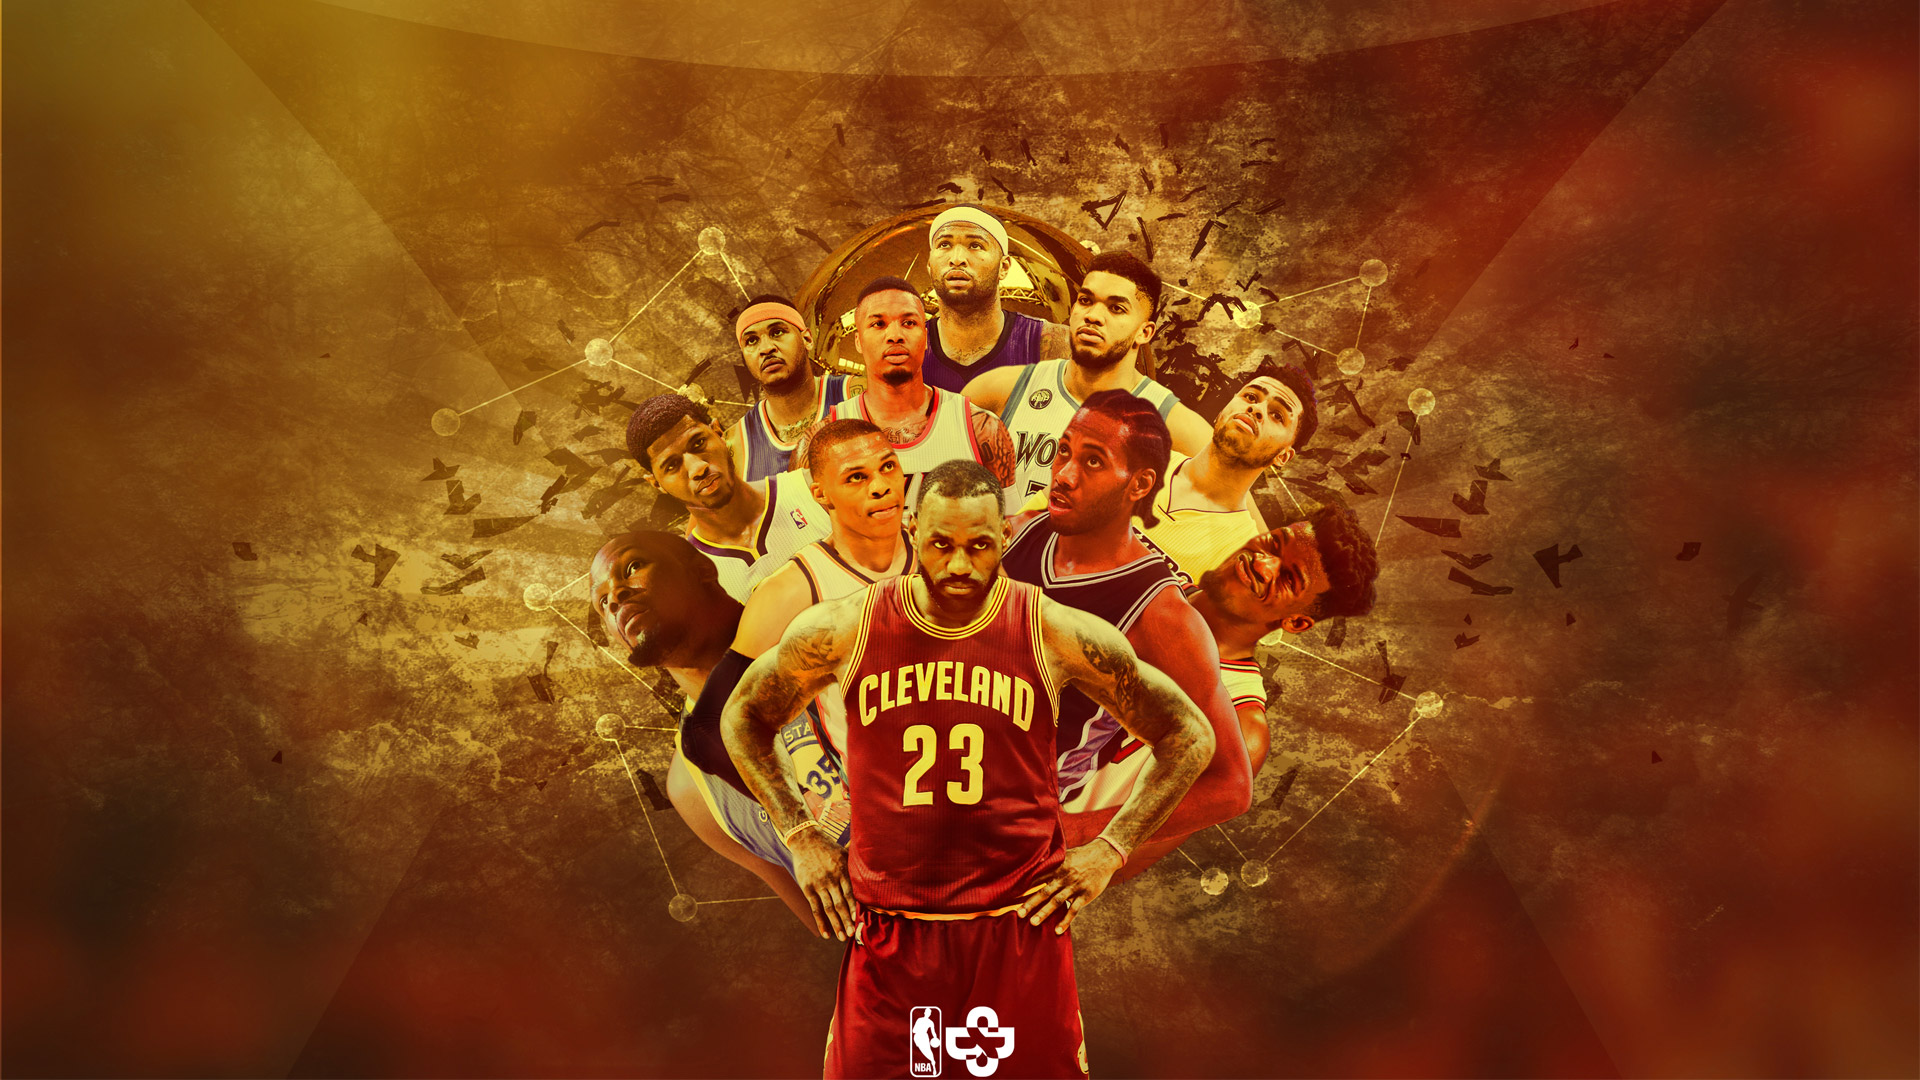 NBA Season 2016-2017 is Coming Wallpaper | Basketball Wallpapers at BasketWallpapers.com